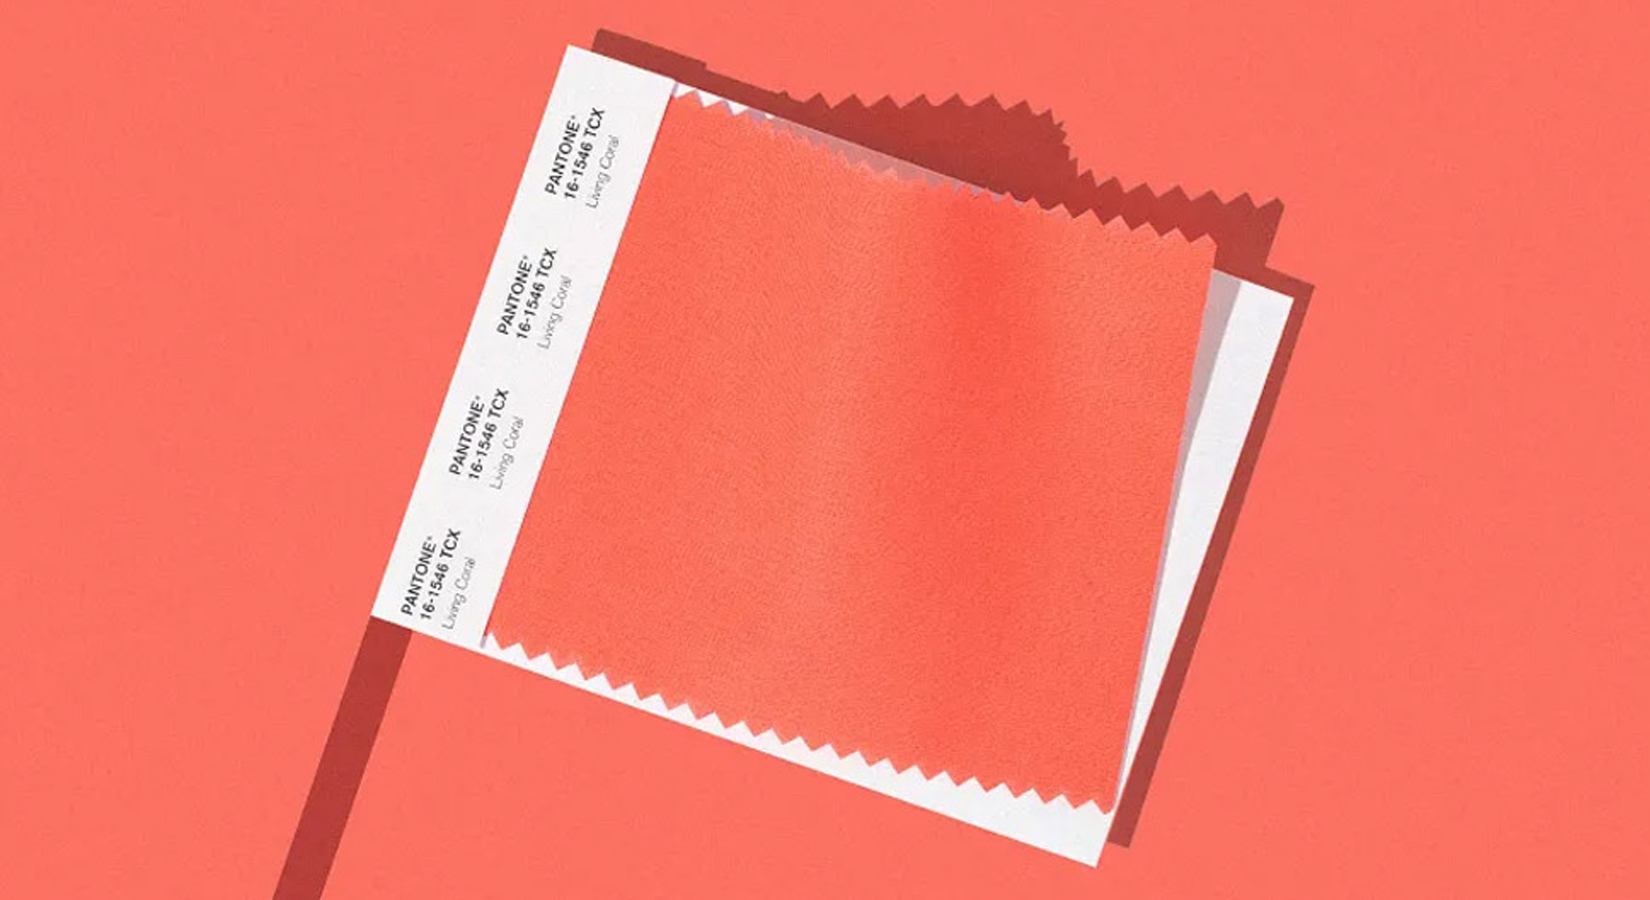 Introducing Pantone's Color of the Year for 2019 – PANTONE 16-1546 Living Coral